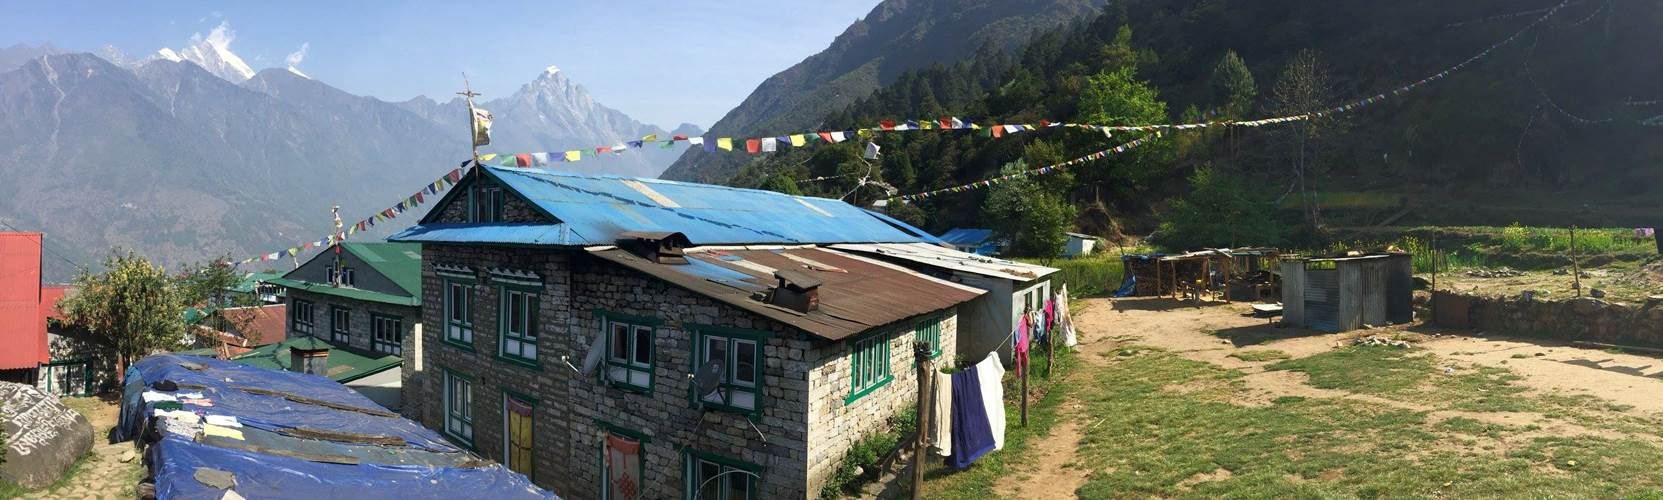 Sherpa lodge on the everest base camp trek